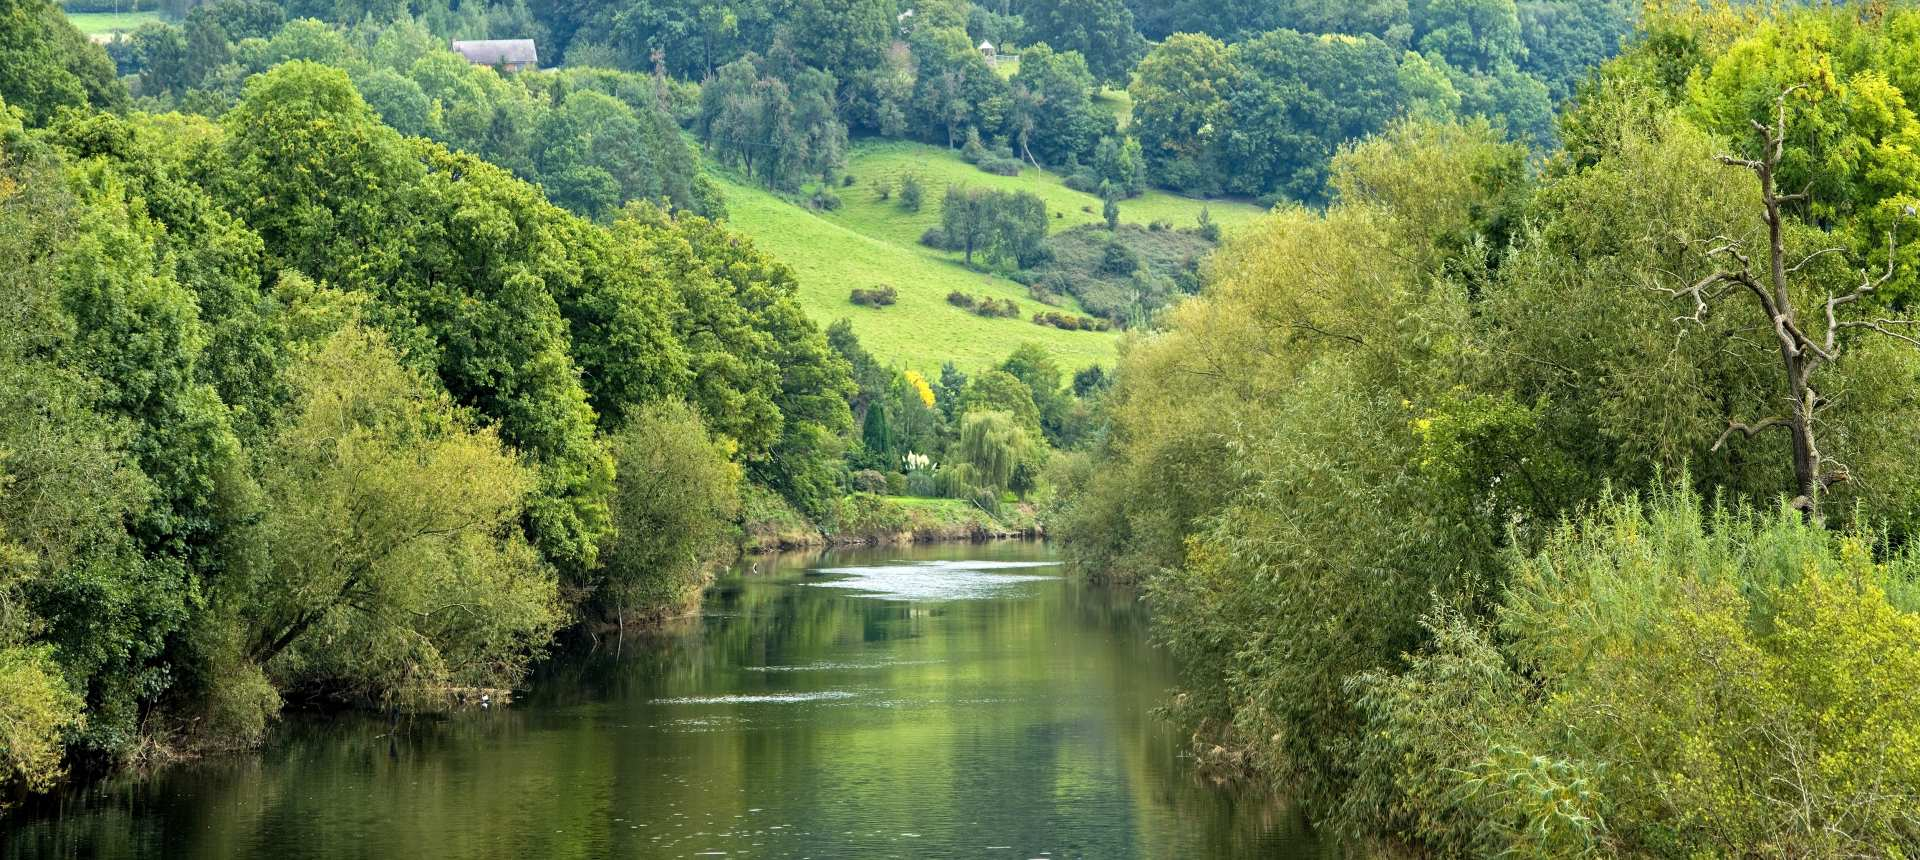 View from Toll Bridge at Hay on Wye SS (1).jpg